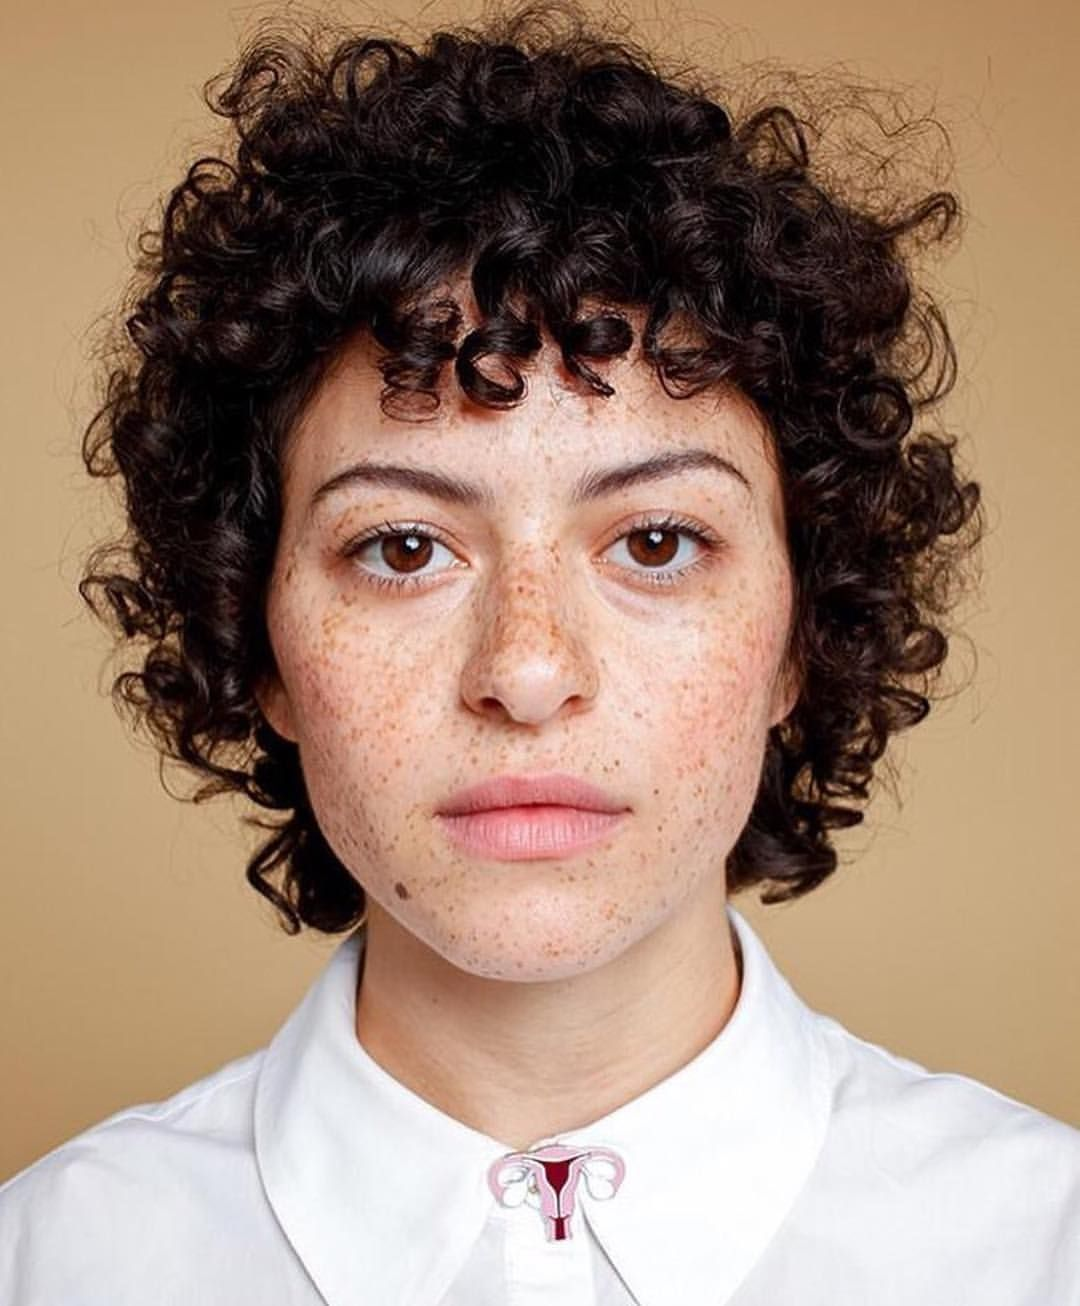 Instagram Alia Shawkat nudes (93 photo), Leaked